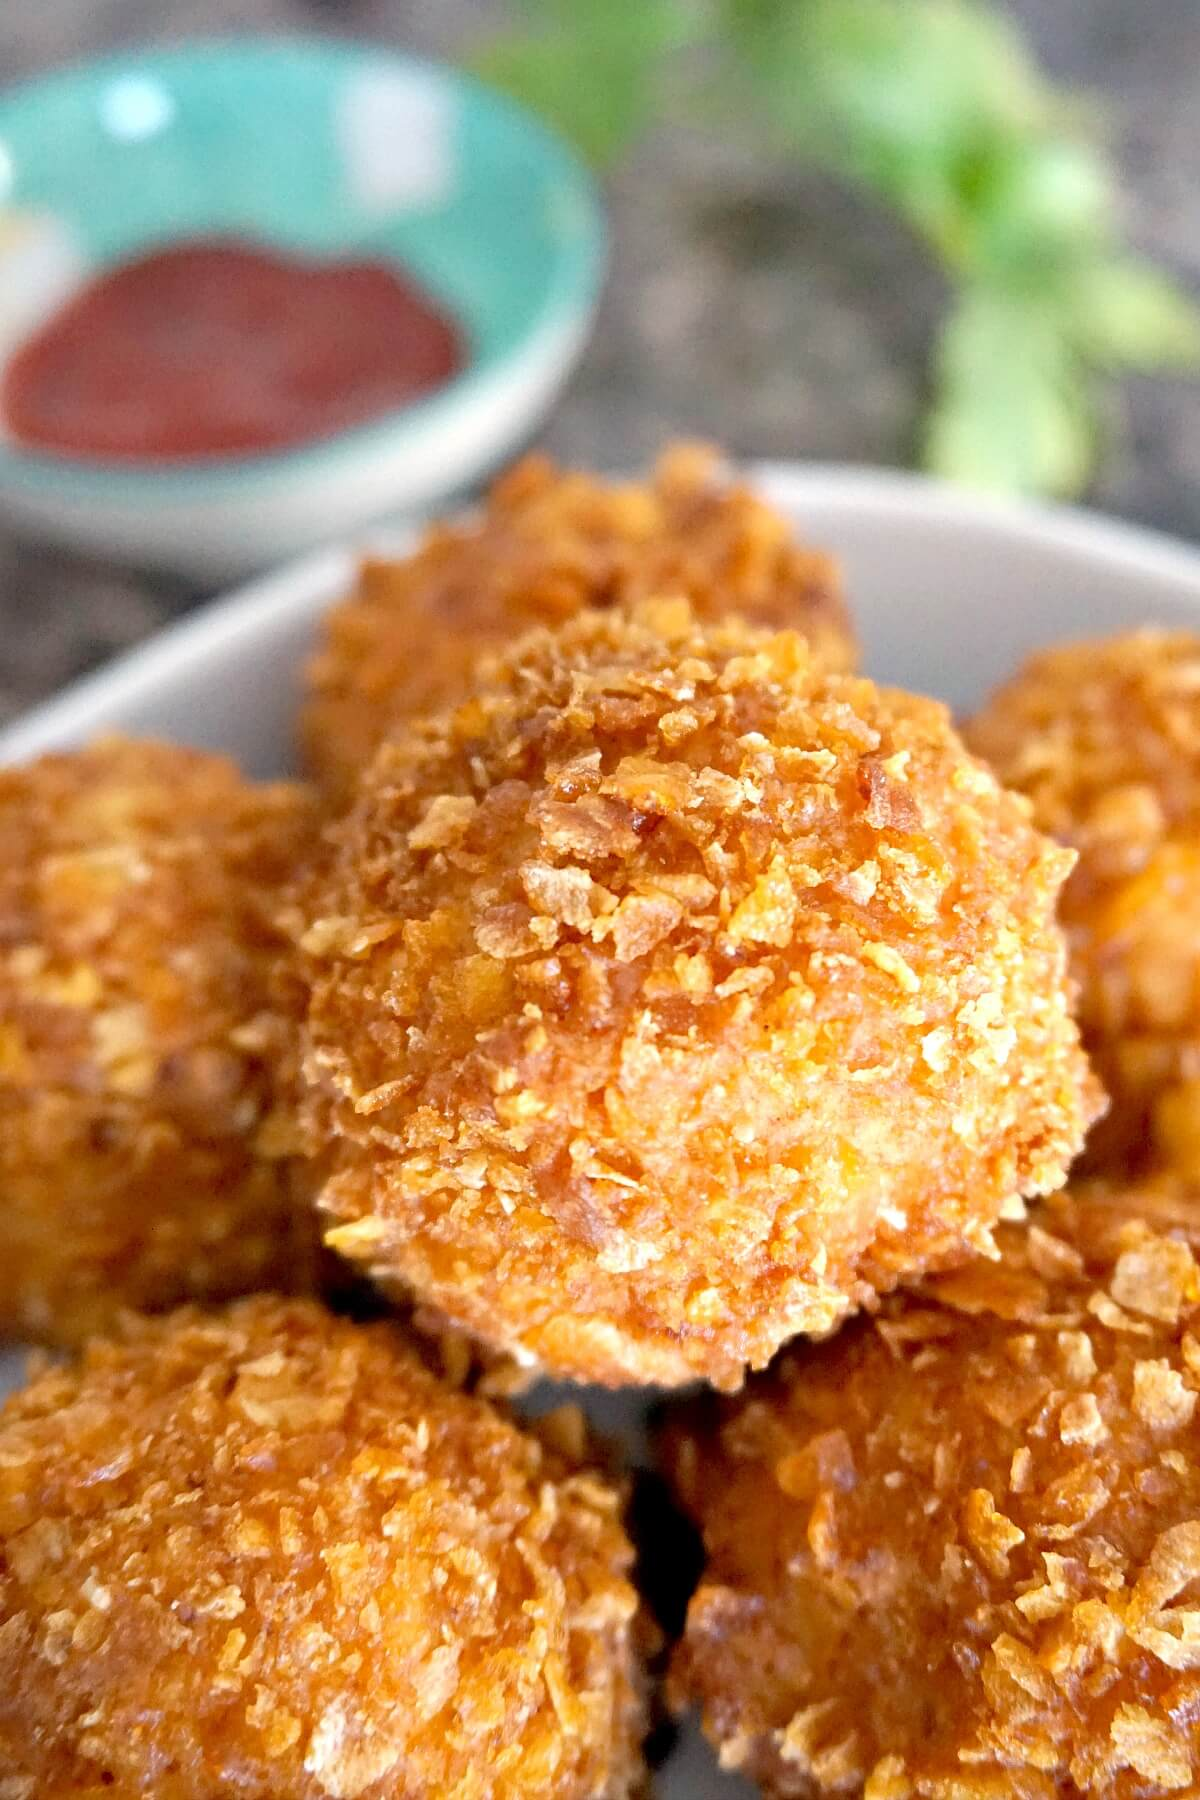 Popcorn chicken balls in a bowl with a small bowl with ketchup in the background